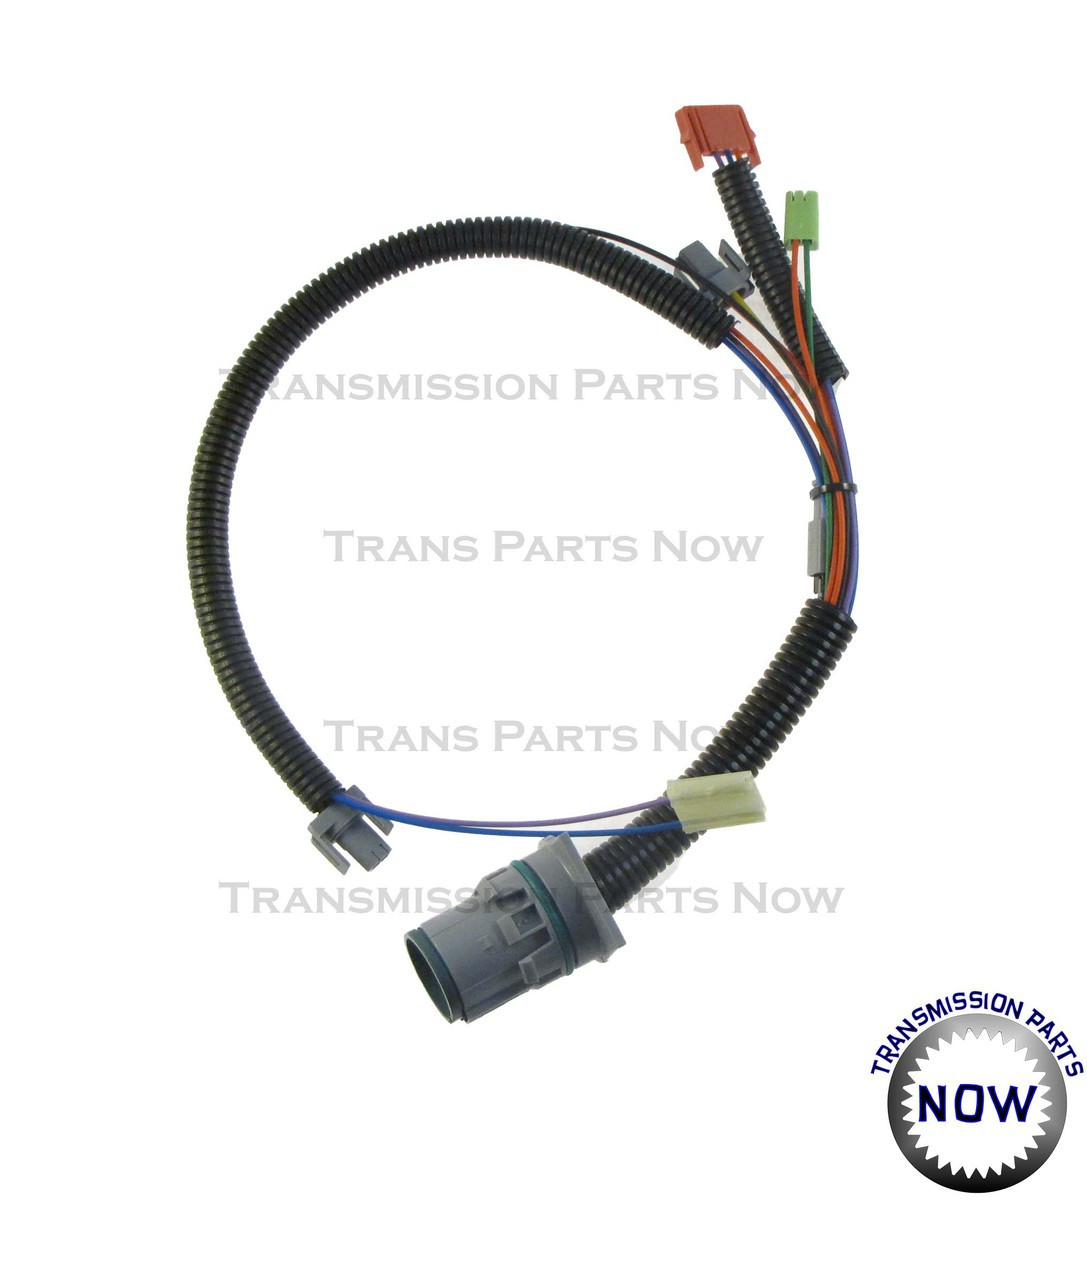 medium resolution of internal wiring harness 1991 2003 34446 free shipping to the us c5 wire harness 4r100 internal wire harness